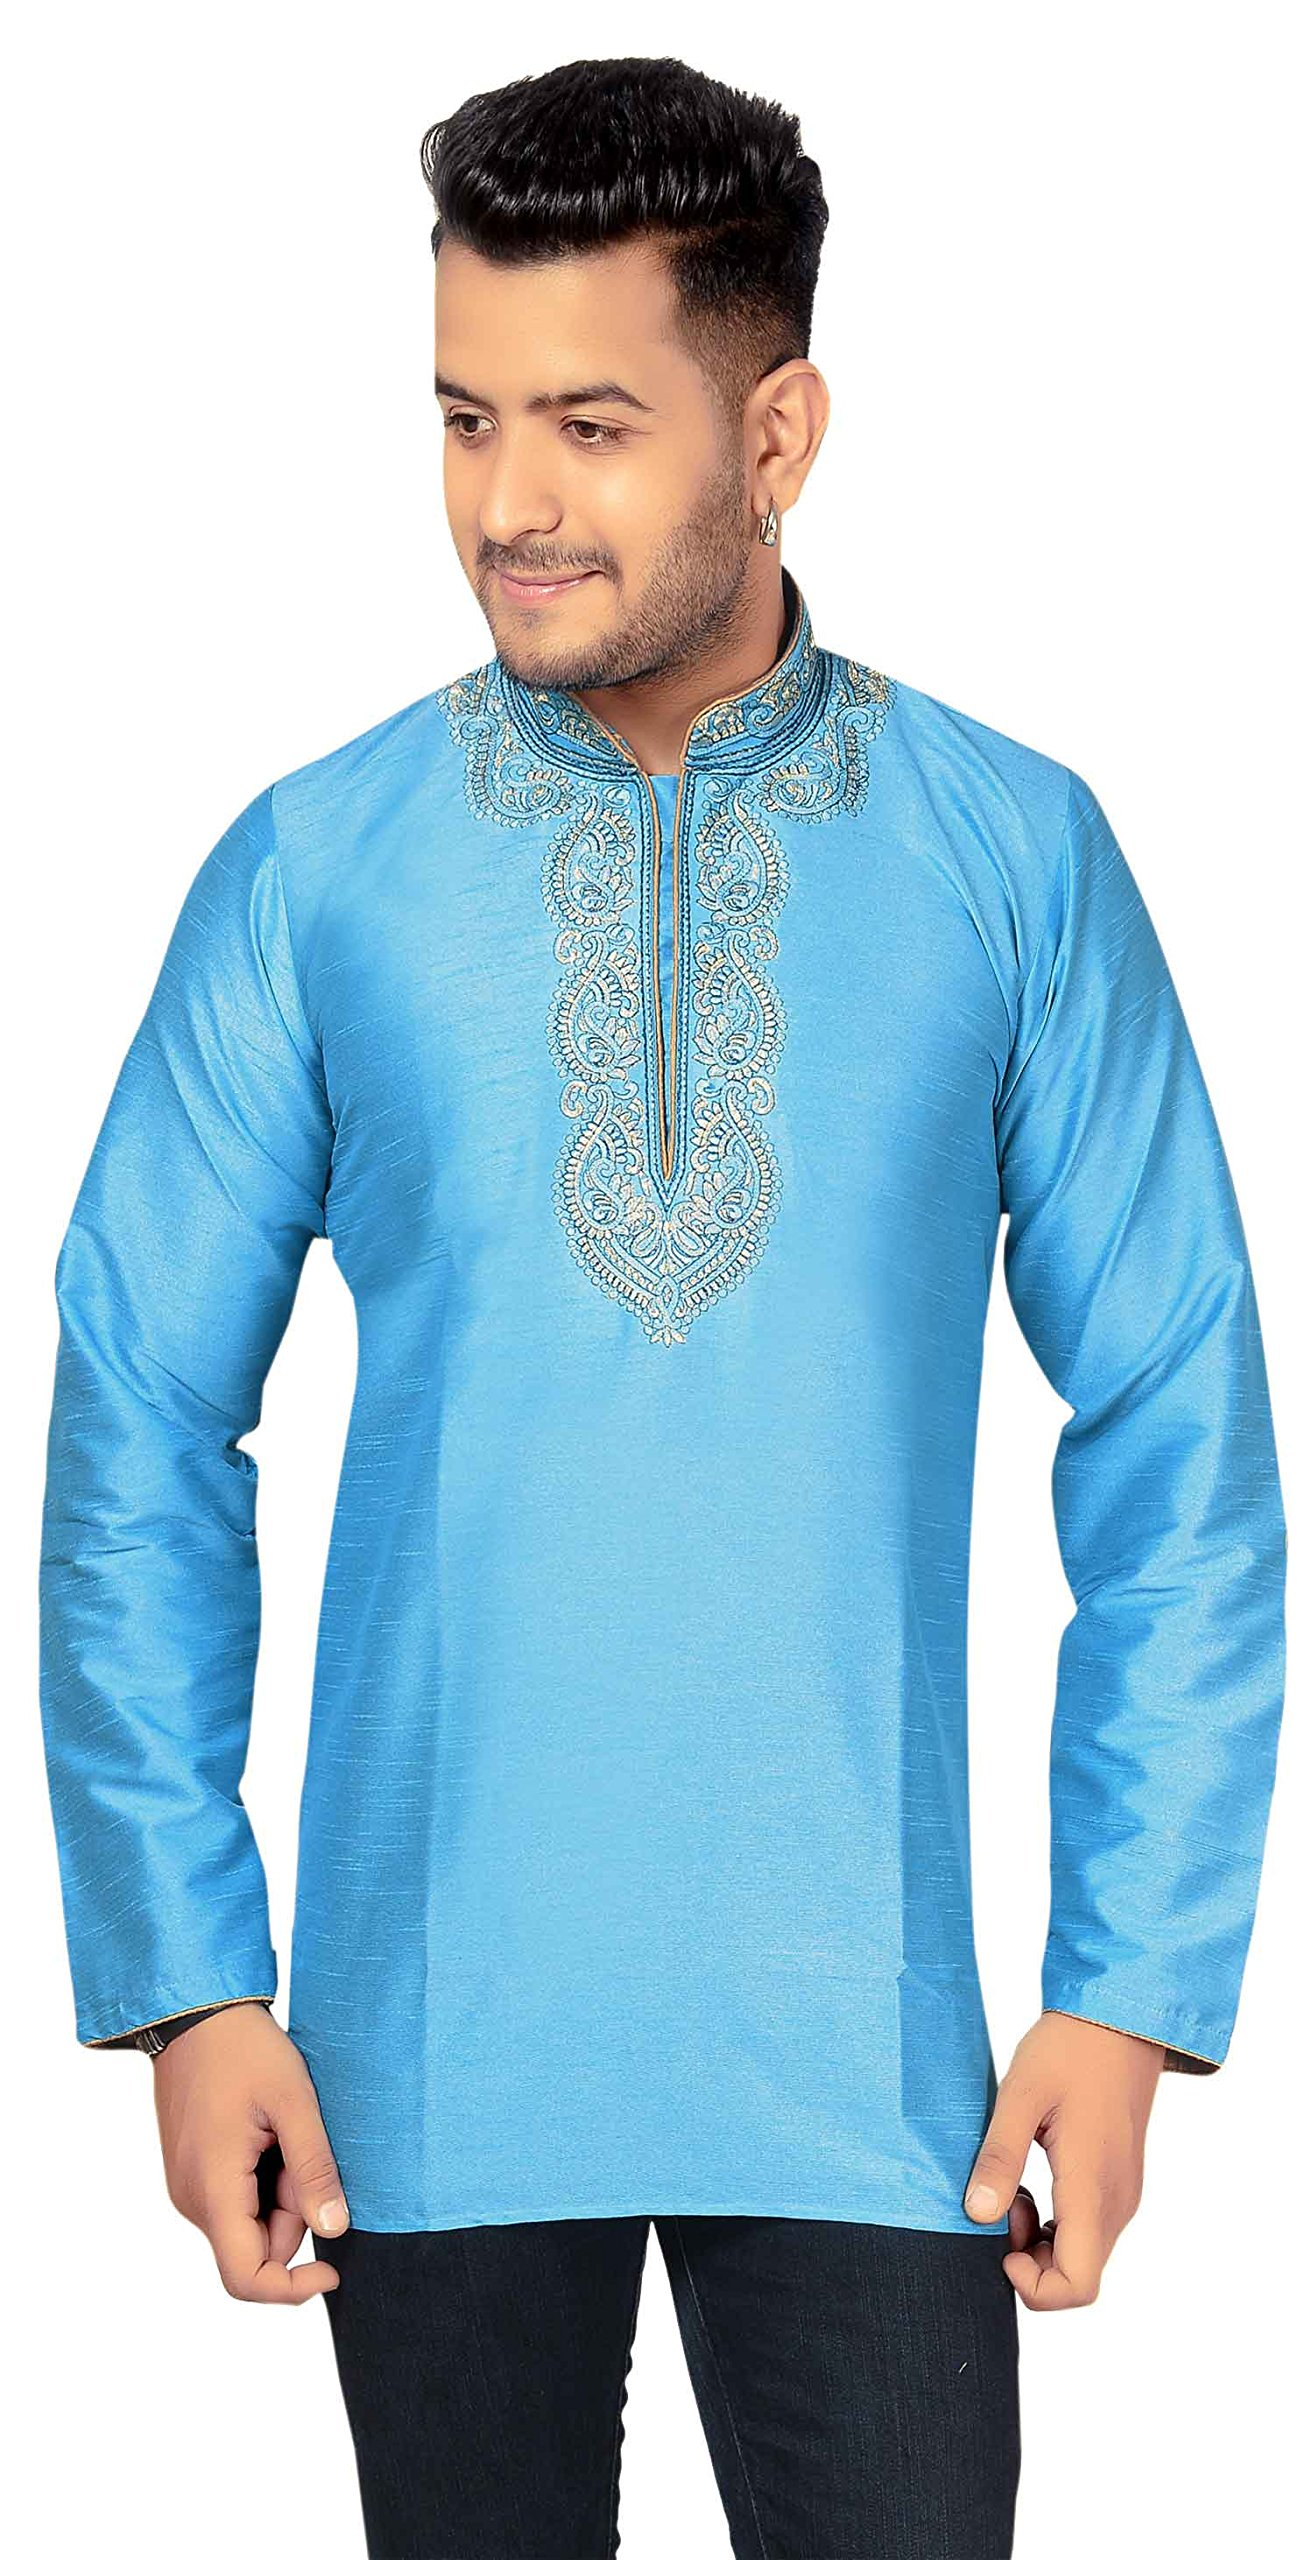 Men's Indian Kurta Costume Dress Short Tunic 2007 (XXXL (Chest- 46 inches), Turquoise)